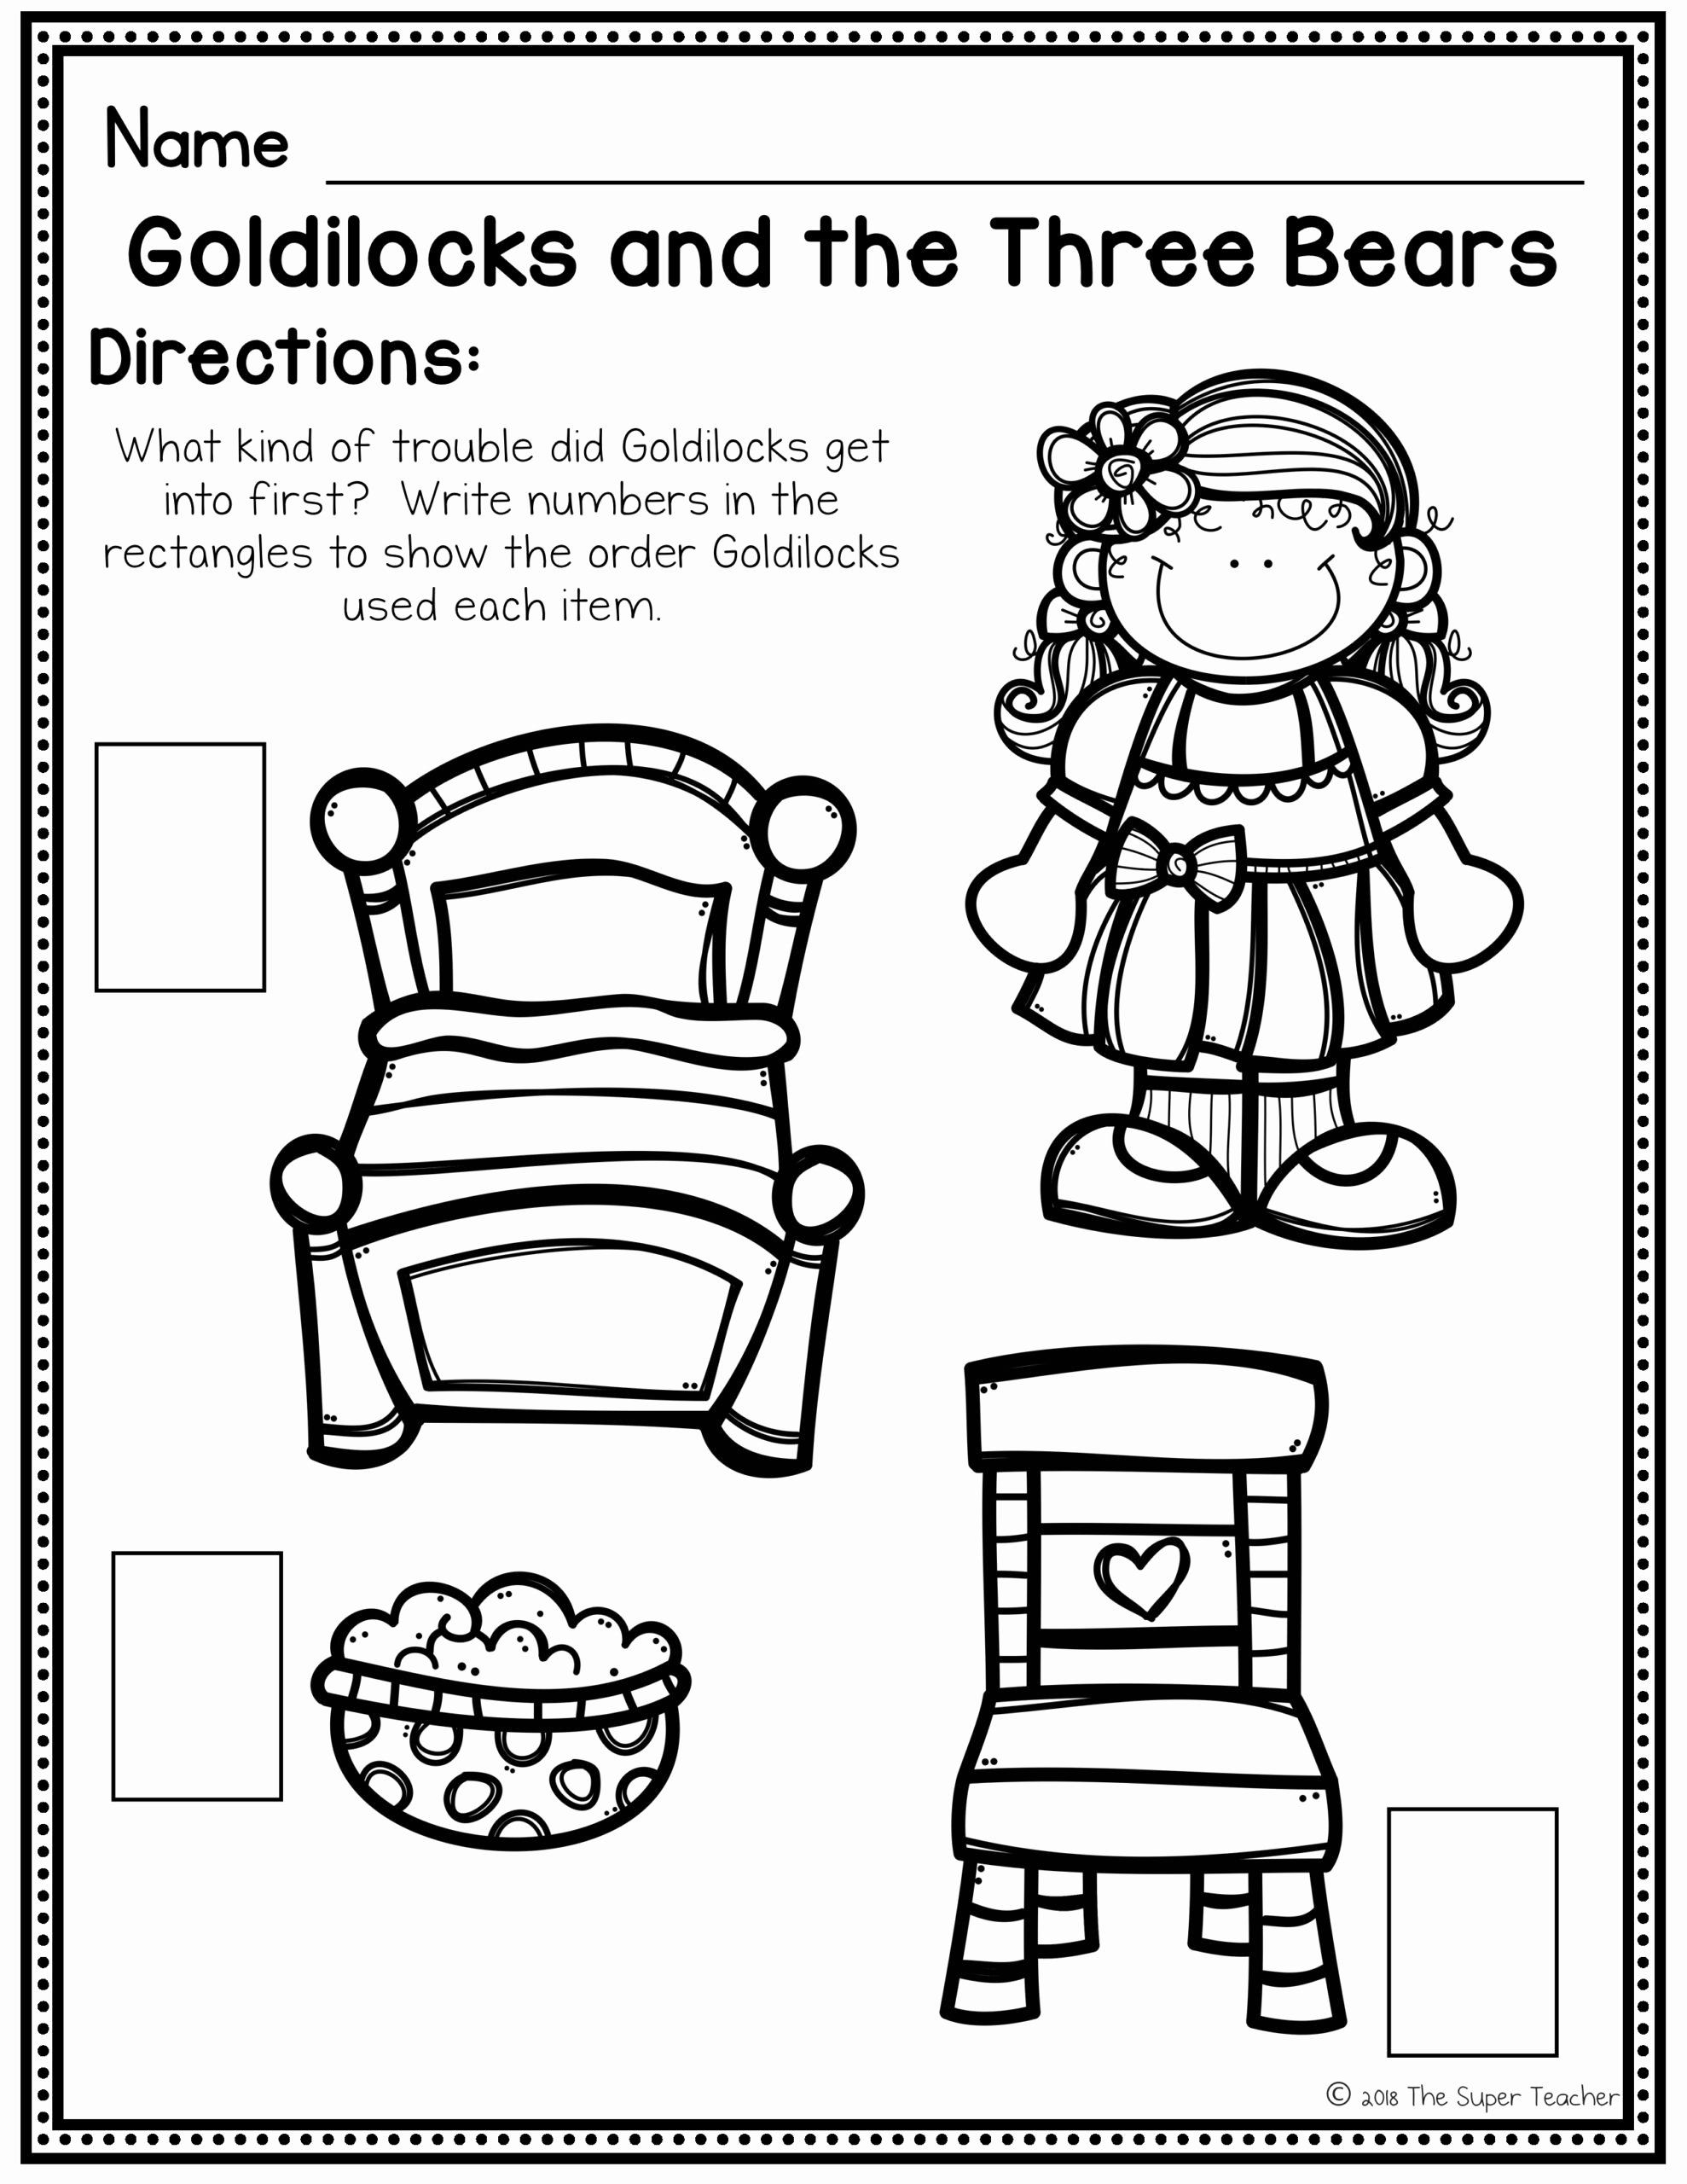 Goldilocks and the Three Bears Worksheets for Preschoolers New Worksheets Goldilocks and the Three Bears Elements